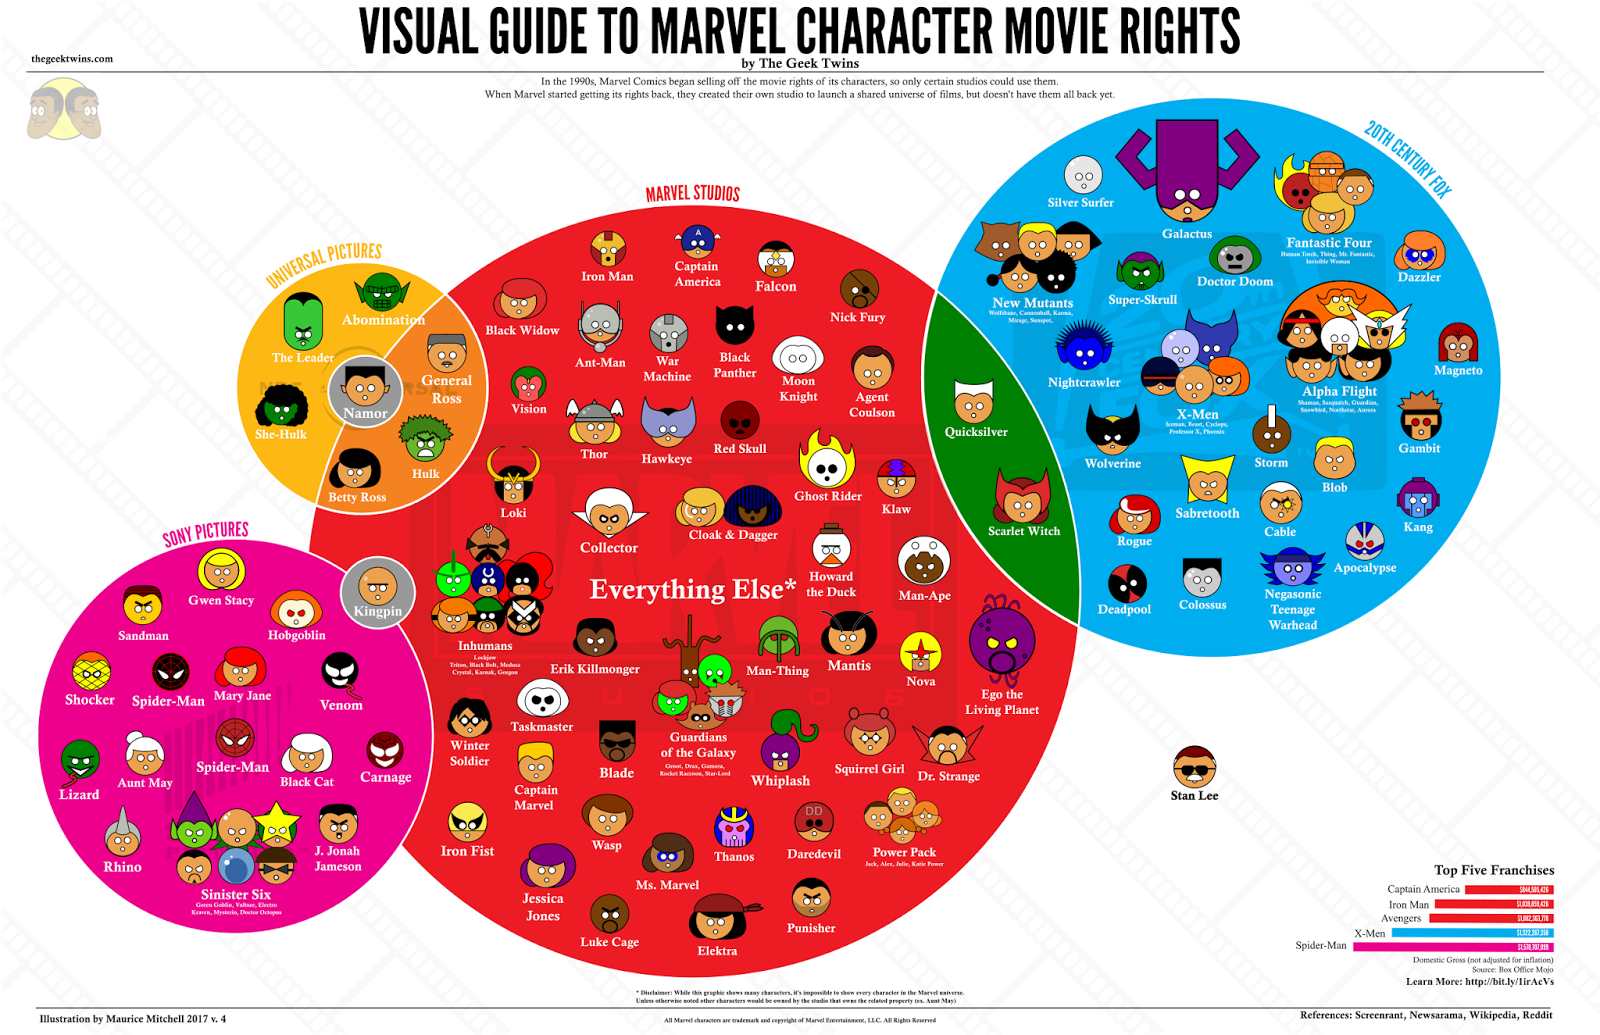 A Visual Guide to Explain The Evolution of Marvel Character Rights